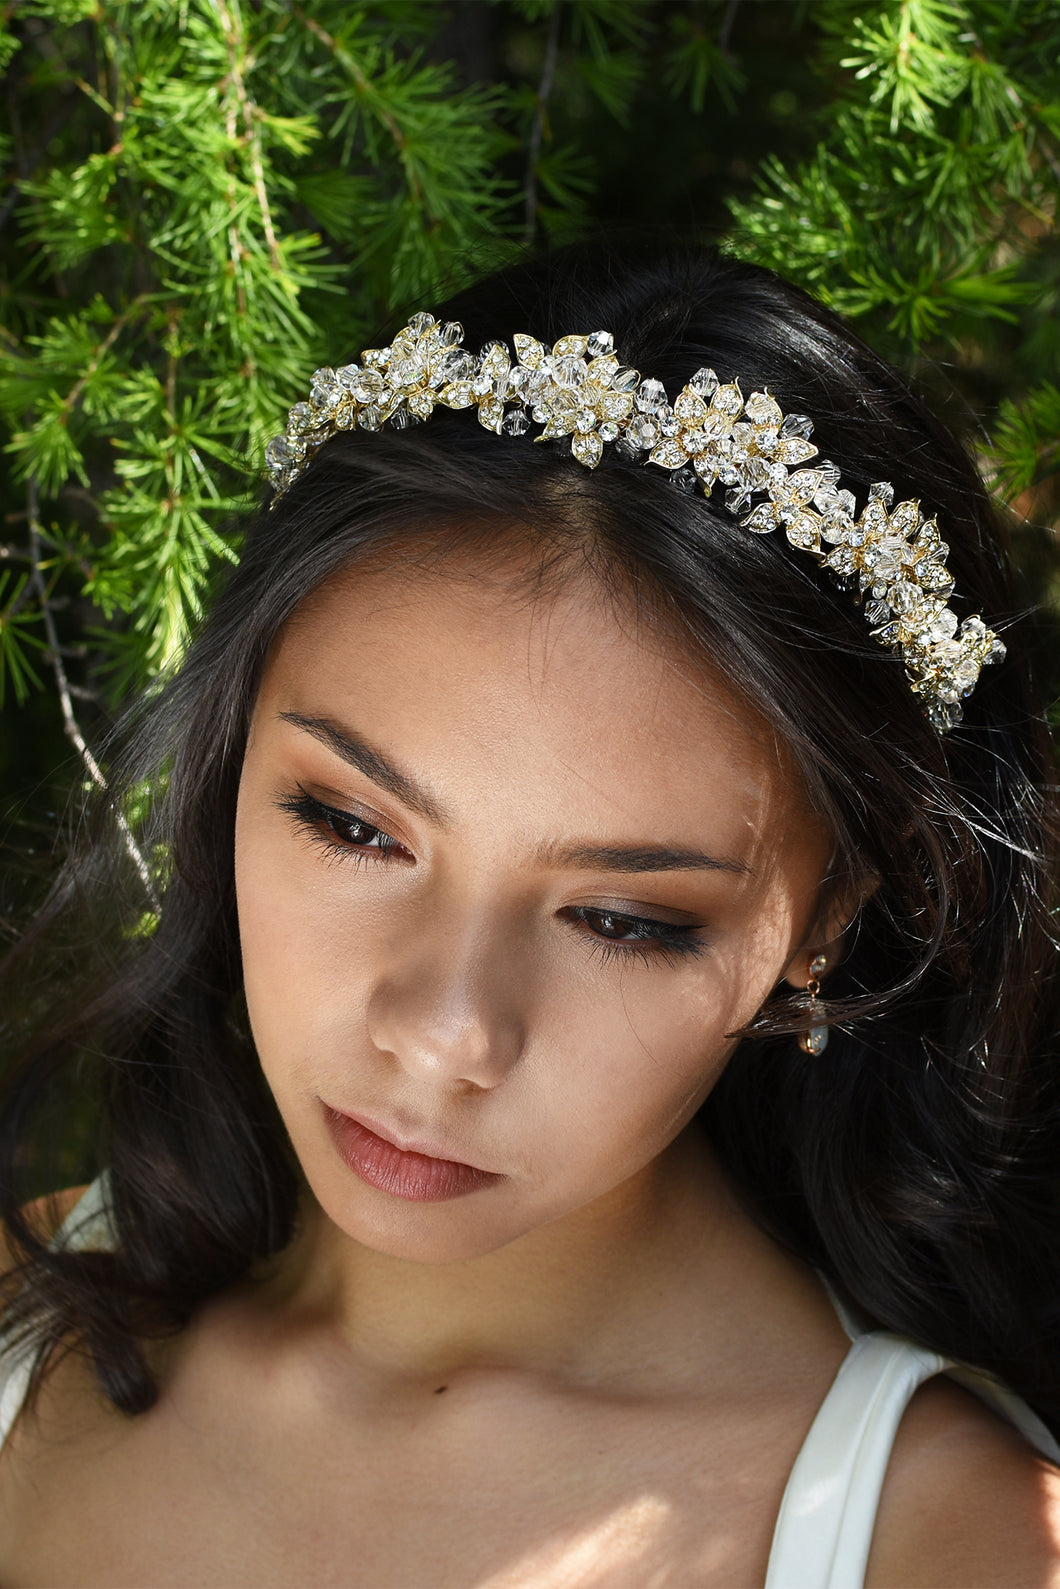 Crystal Bead Headband with Gold Parts worn by a dark haired Bride under a pine tree